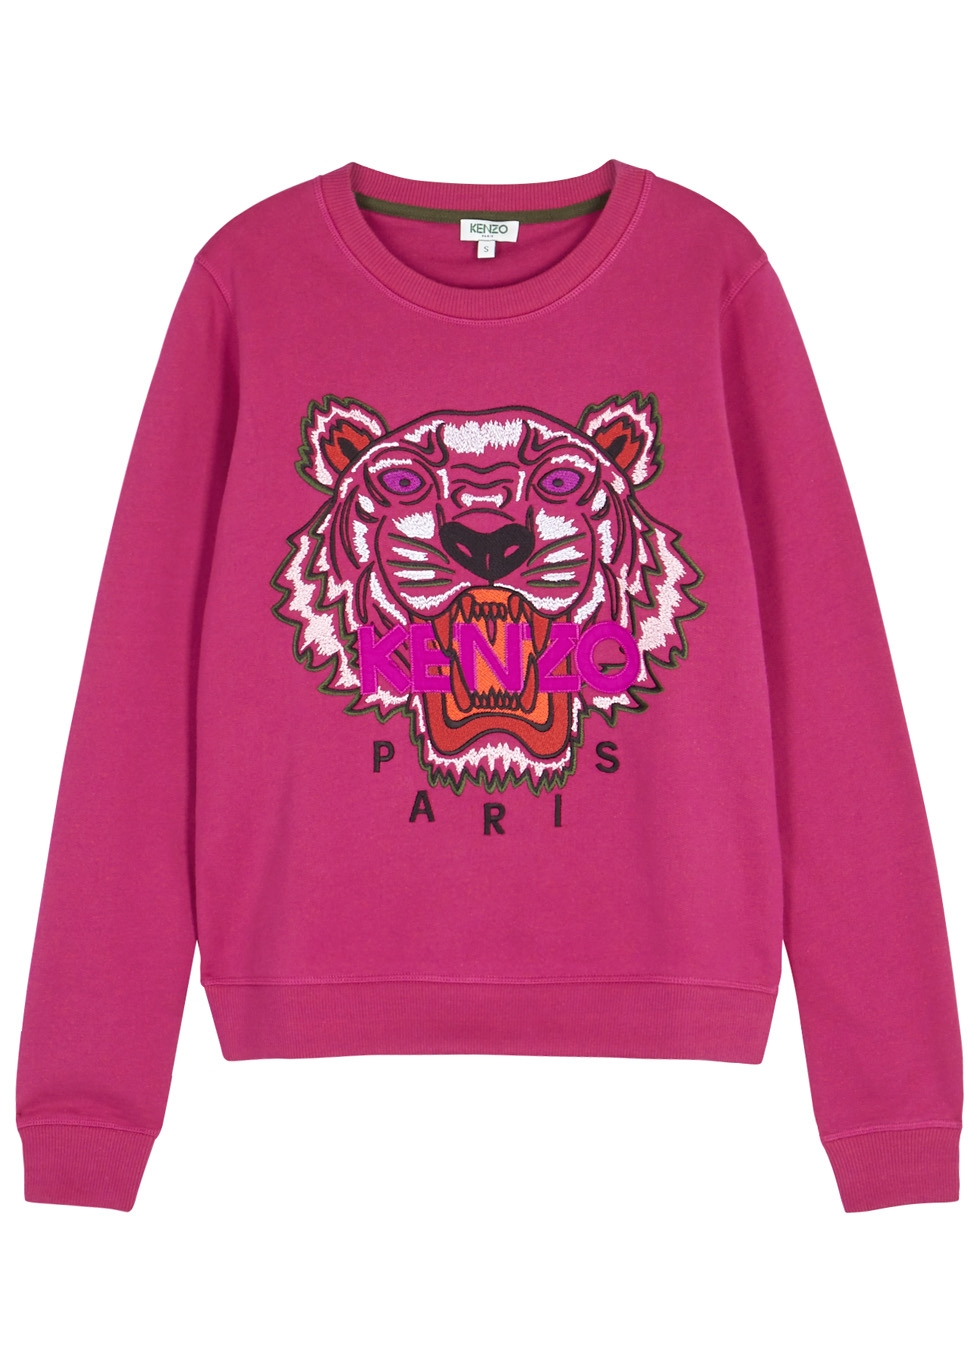 Kenzo - Fuchsia tiger-embroidered cotton sweatshirt, $251.98